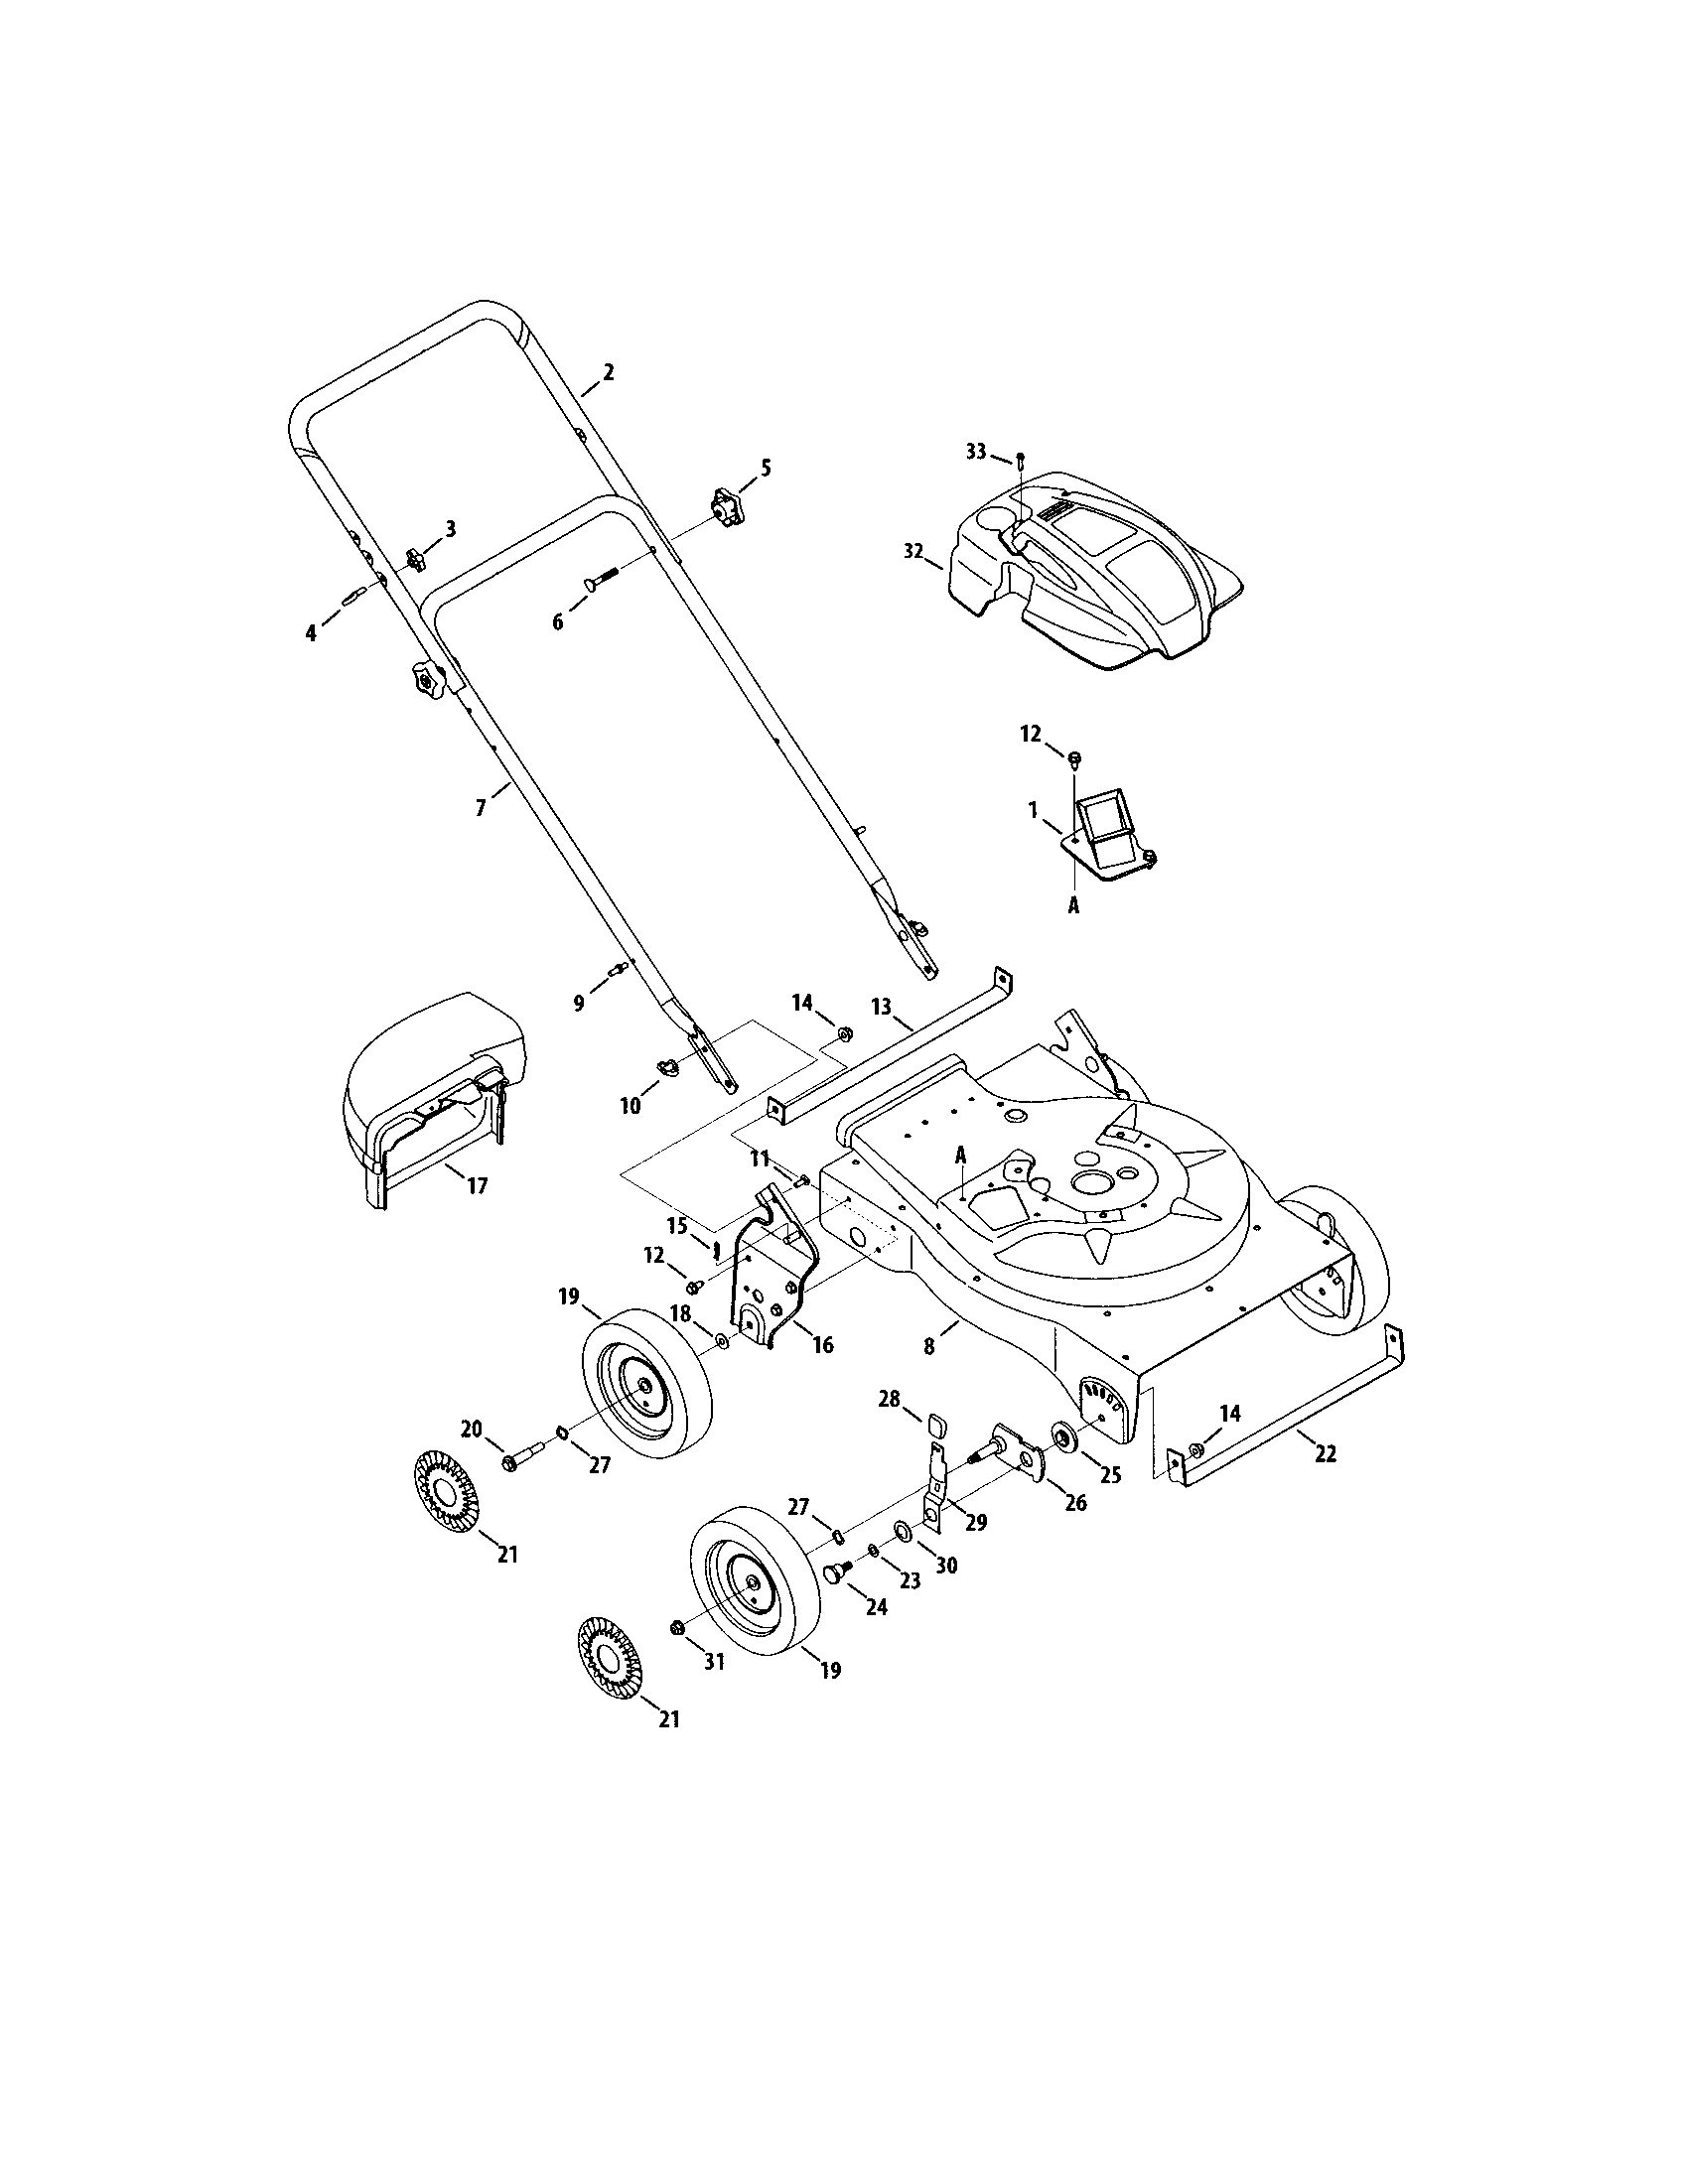 HANDLE/HOUSING/WHEELS Diagram & Parts List for Model